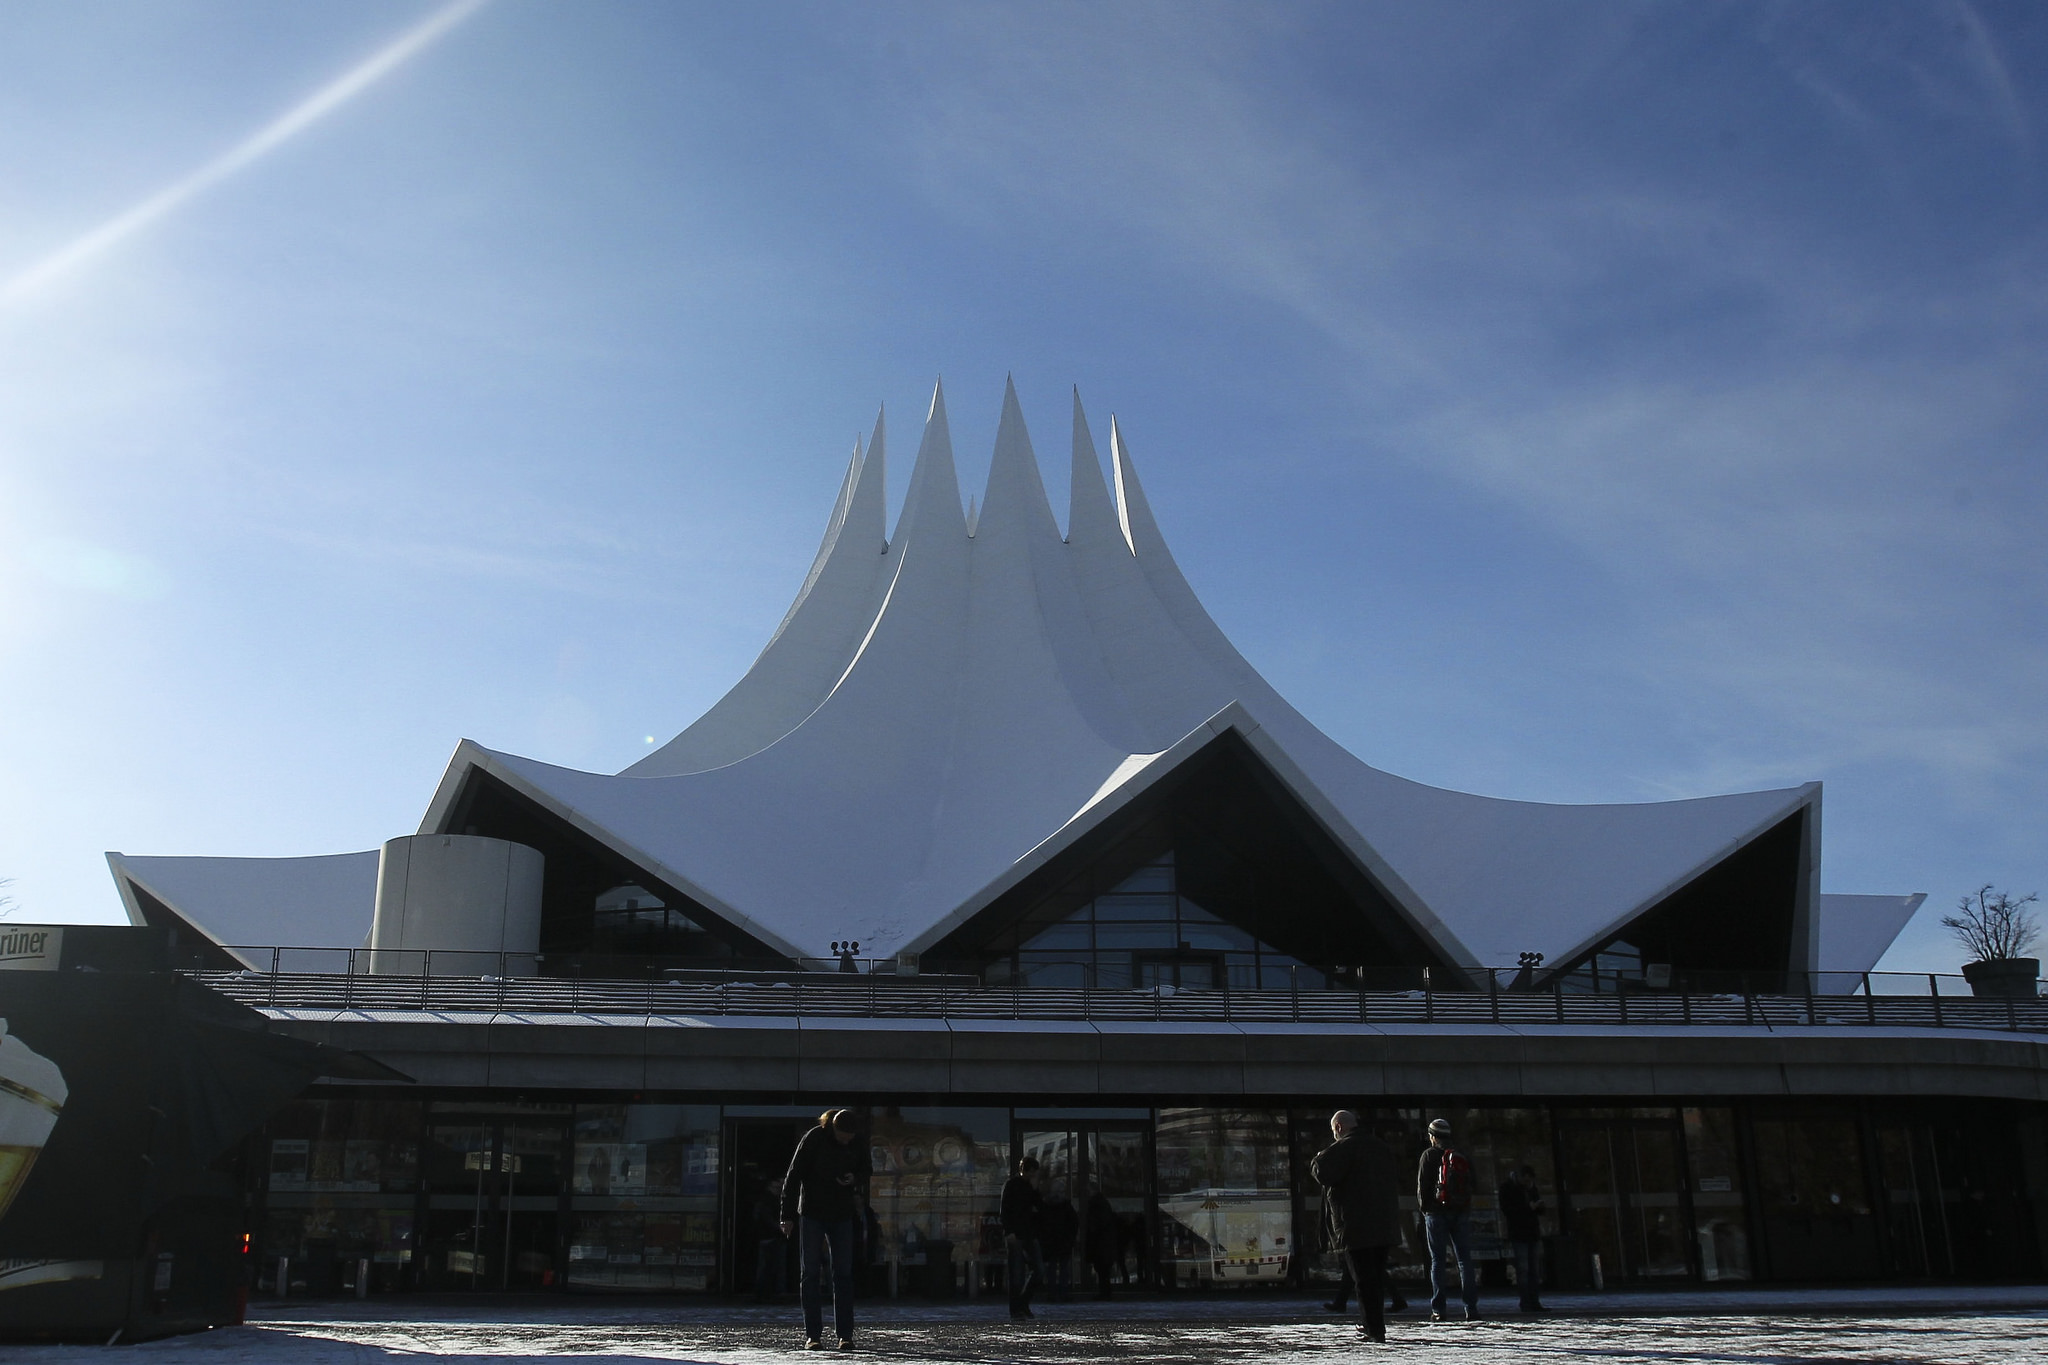 The iconic Tempodrom stadium in Berlin is a favourite amongst players and fans alike